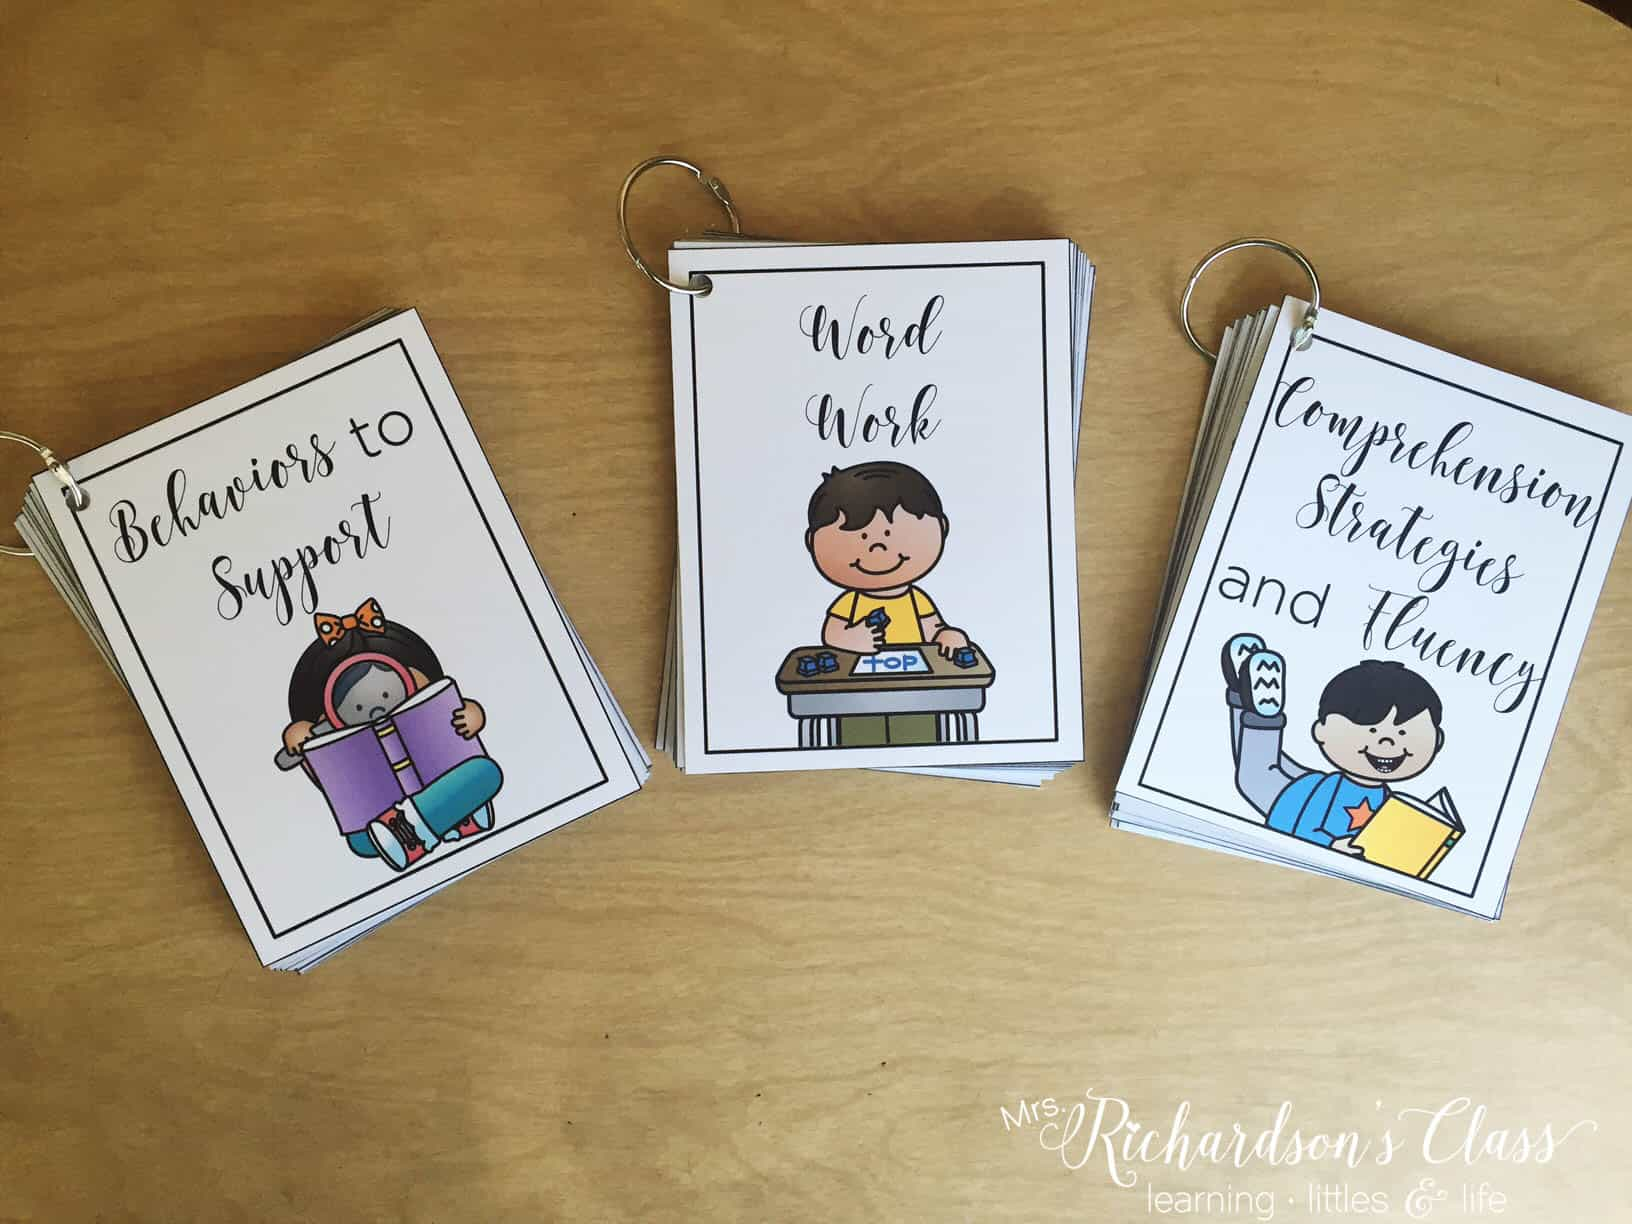 FREE Guided Reading Resource Cards to help you plan for each group's activities right on their level! Perfect to help guided reading groups run smoothly!